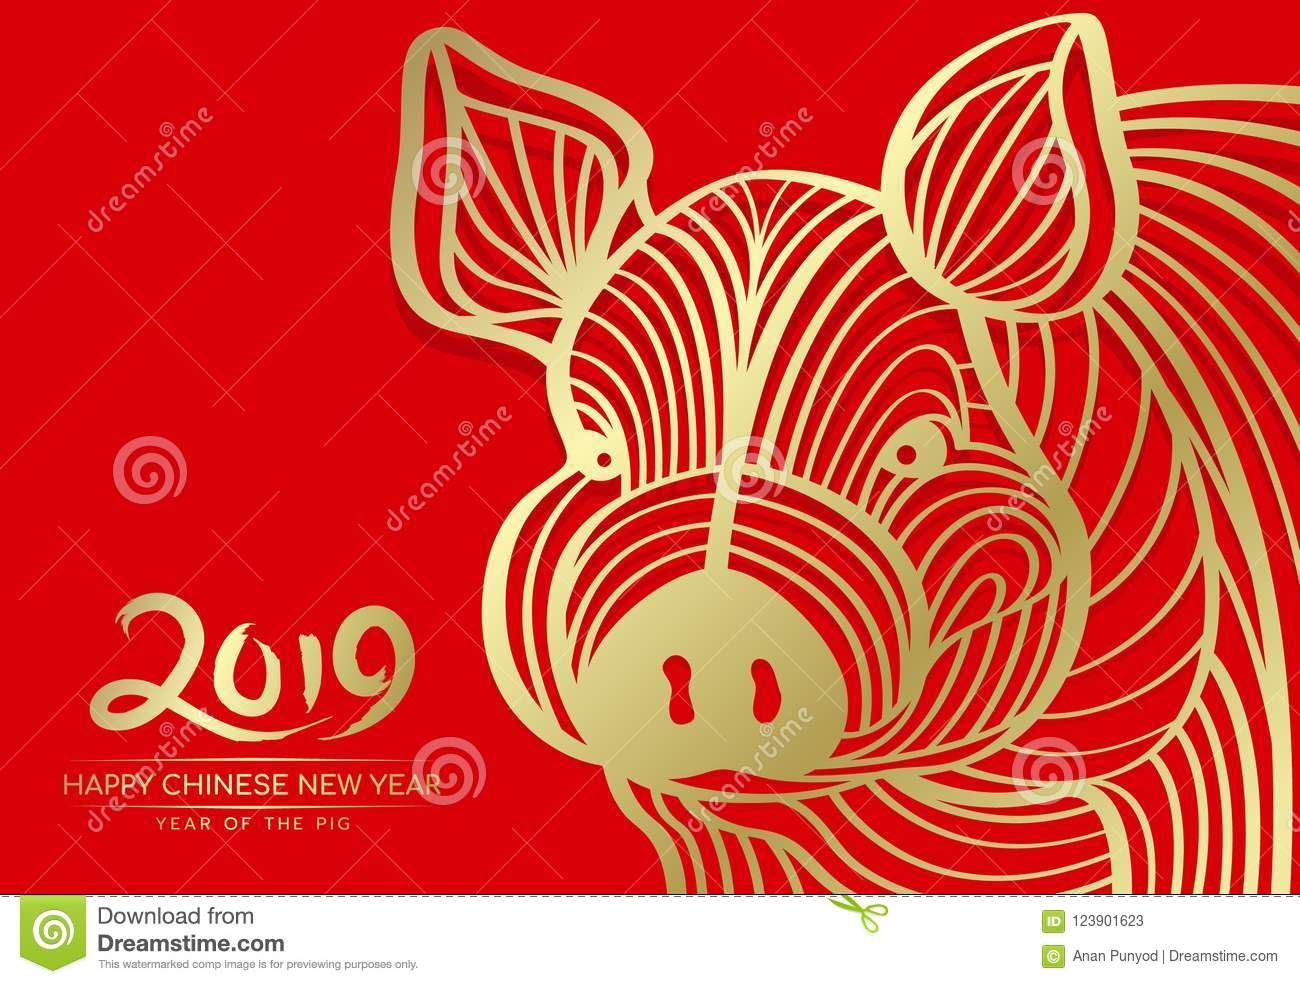 Happy Chinese New Year 2019 And Year Of Pig Card With Gold Head Pig